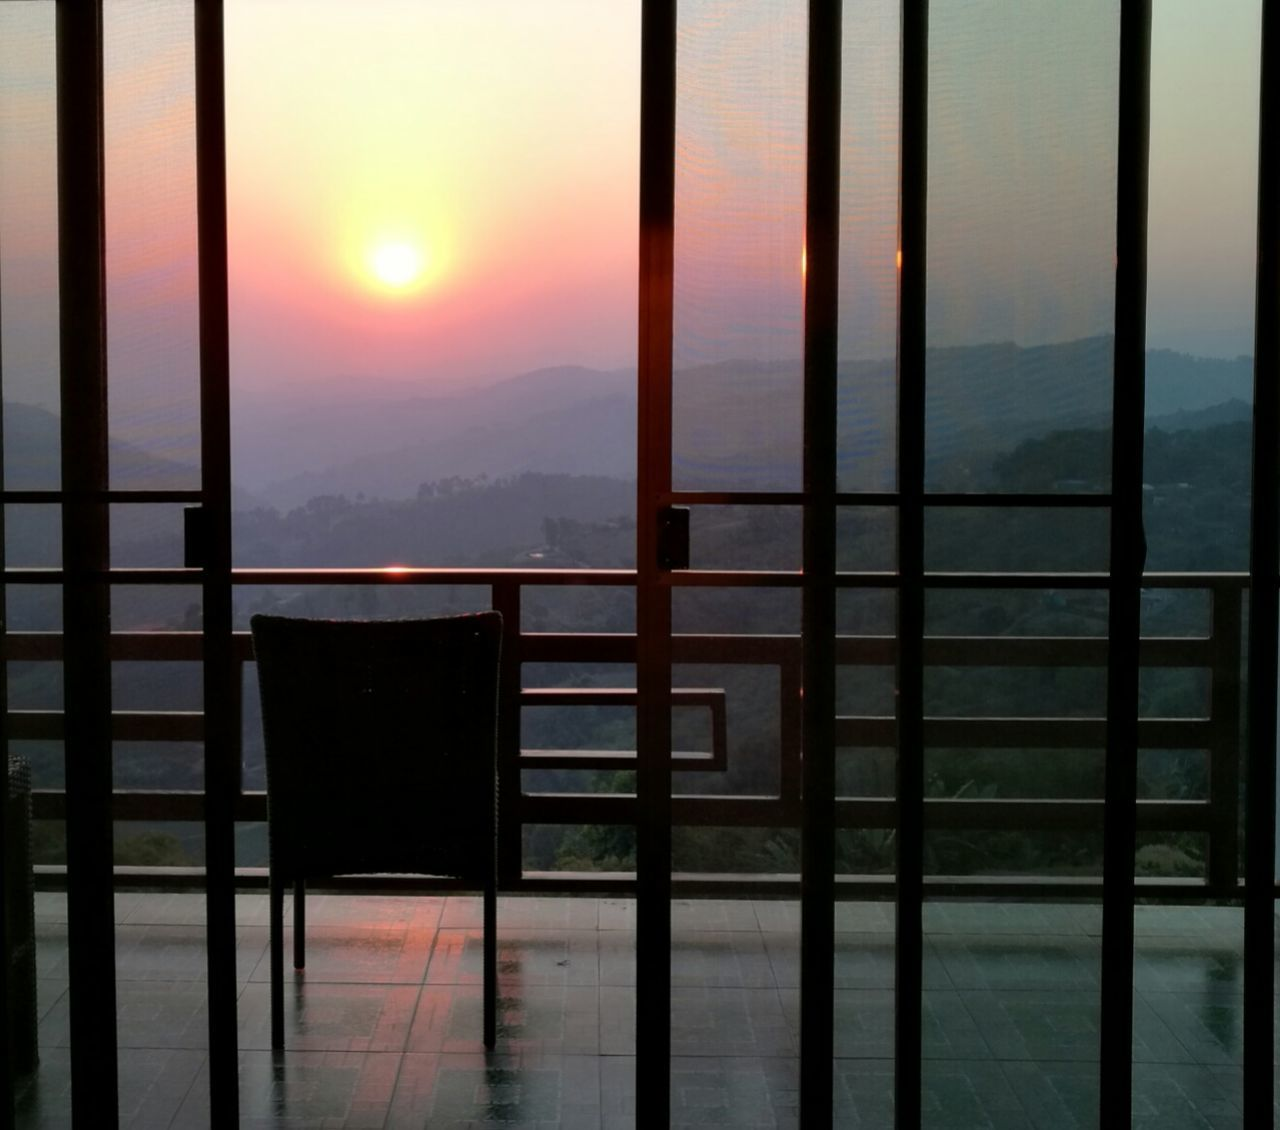 EyeEmNewHere Window Indoors  Nature Sky Home Interior No People Beauty In Nature Day Sunrise Outdoors Resting Time Relax Time  Alone Time Thinking Ahead Chilling Armchair Balcony View The City Light Lines And Lights Mountain View Mountain And Sunrise Sunlight, Shades And Shadows Emotions